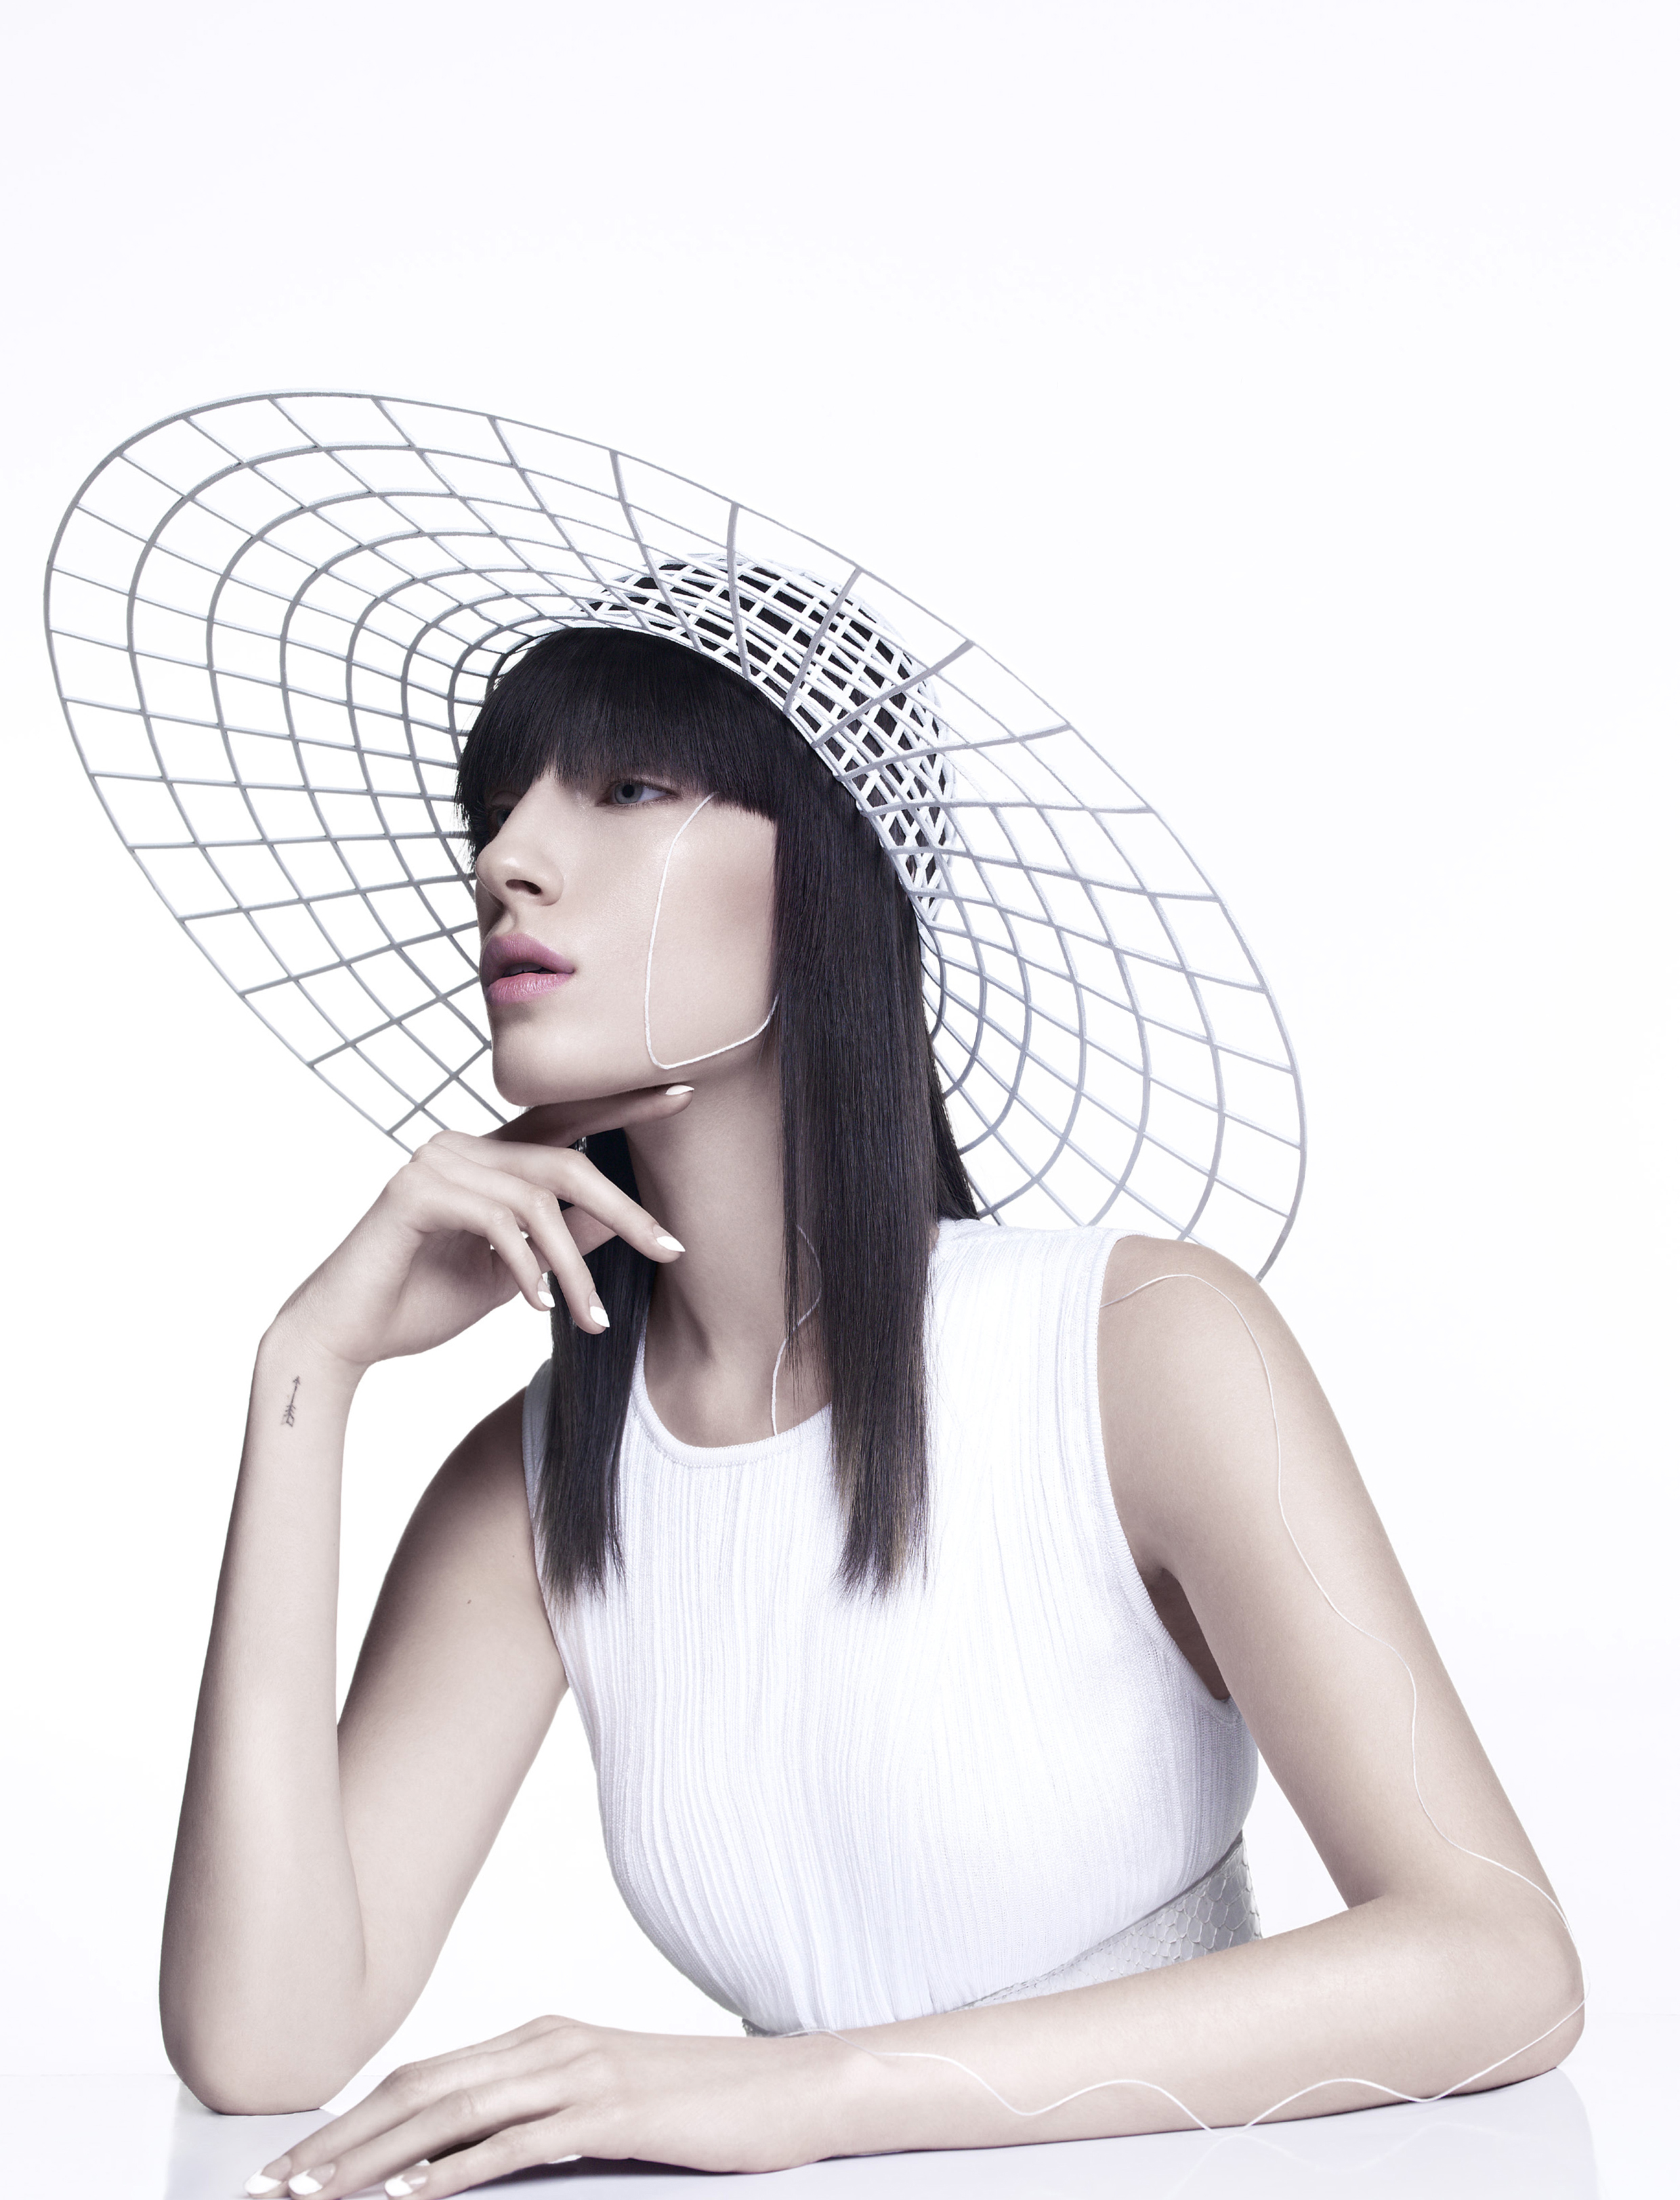 JP+SANDY - HB KAZAK - BEAUTY - FEB-3_Vortex_SunHat_Only_notext